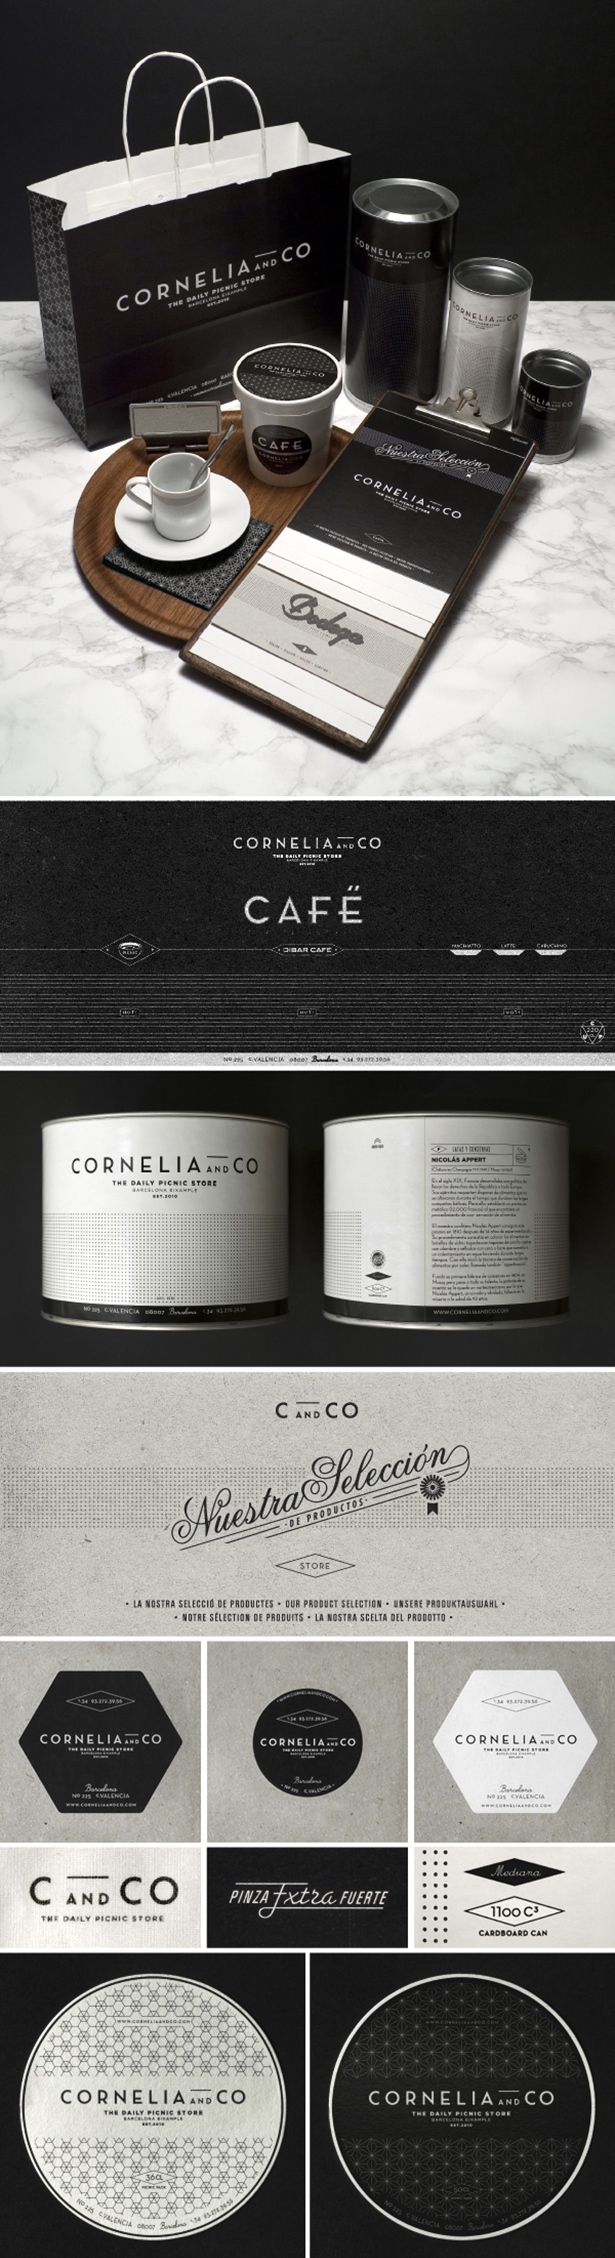 Cornelia and Co Barcelona Daily Picnic Store Fromage Charcuterie